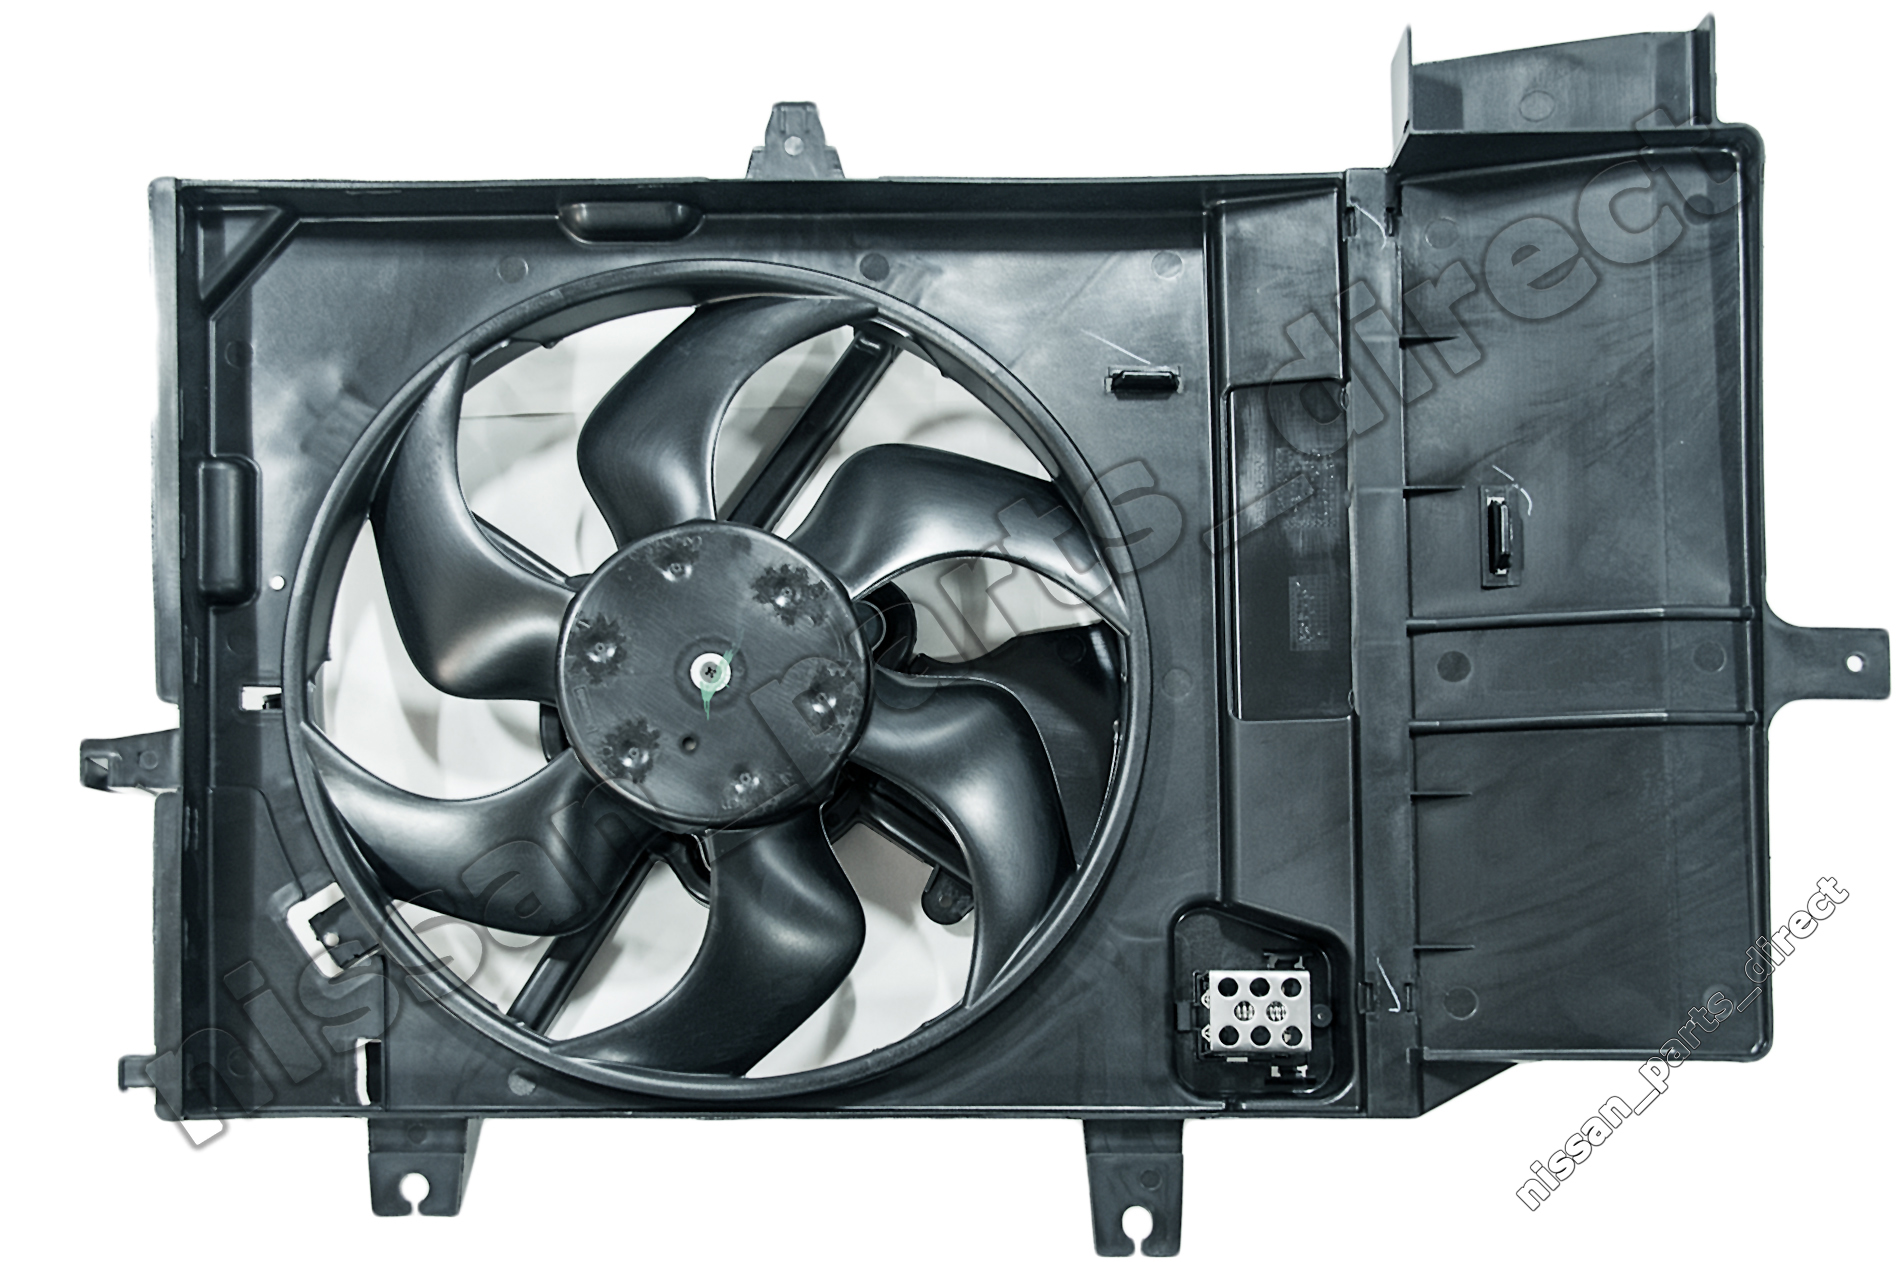 hight resolution of nissan genuine micra k12 engine cooling system radiator motor and fan 21481ax800 ebay